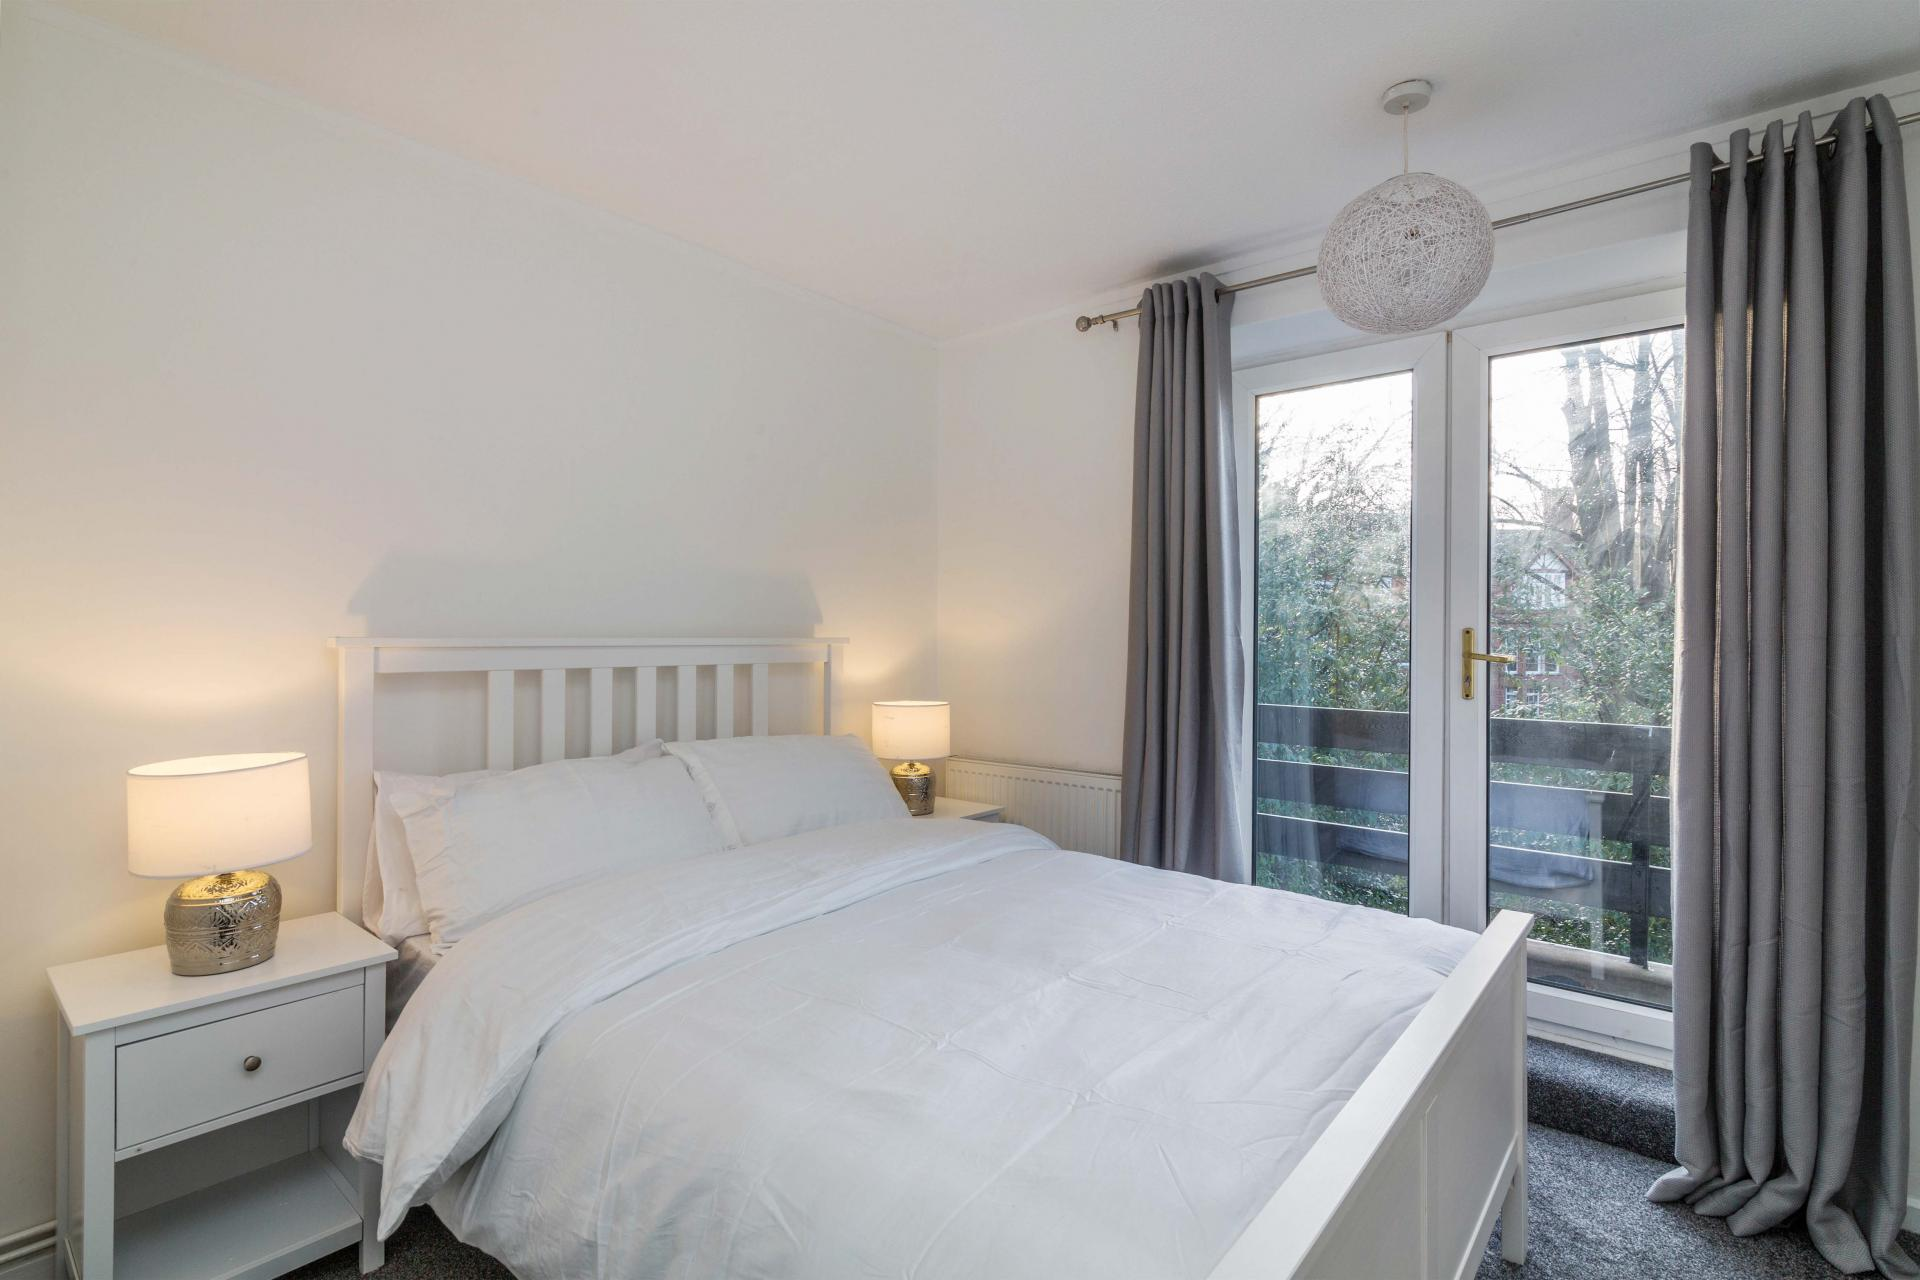 Sleeping at Redcliffe Apartment, Mapperley Park, Nottingham - Citybase Apartments